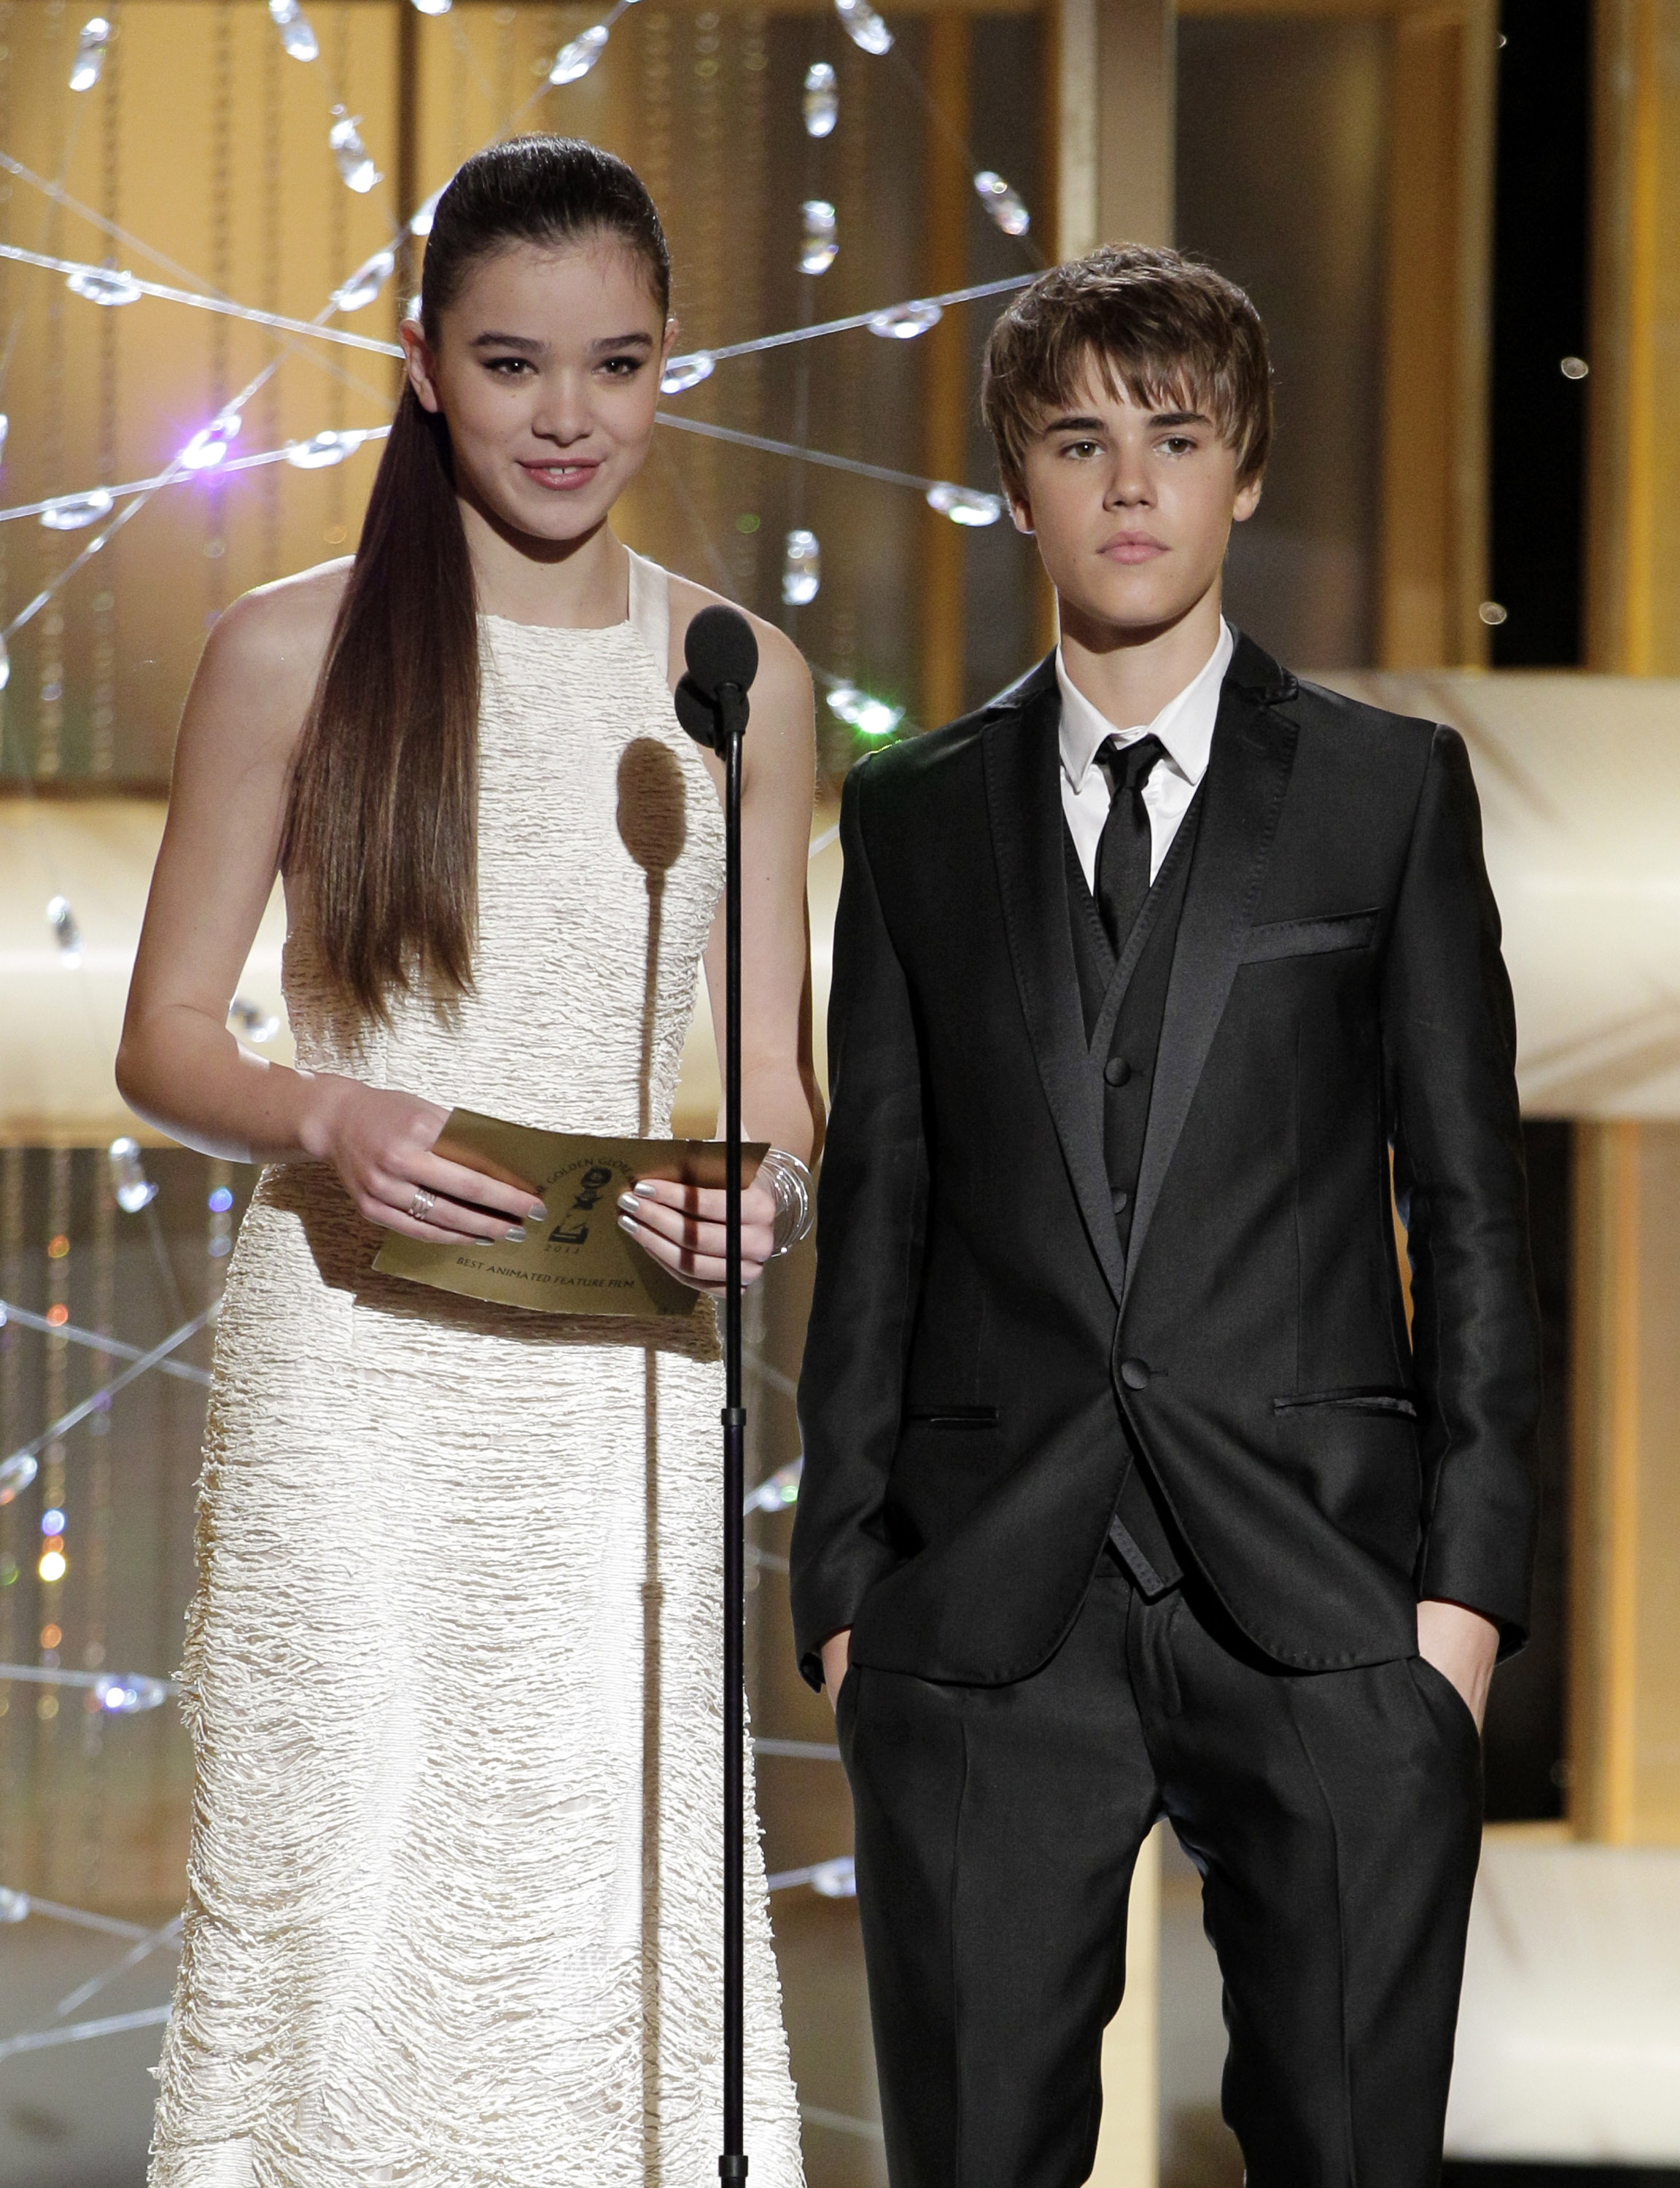 Hailee Steinfeld and Justin Beiber standing close to each other as they look towards the audience. Hailee is holding a sheet of paper in her hands